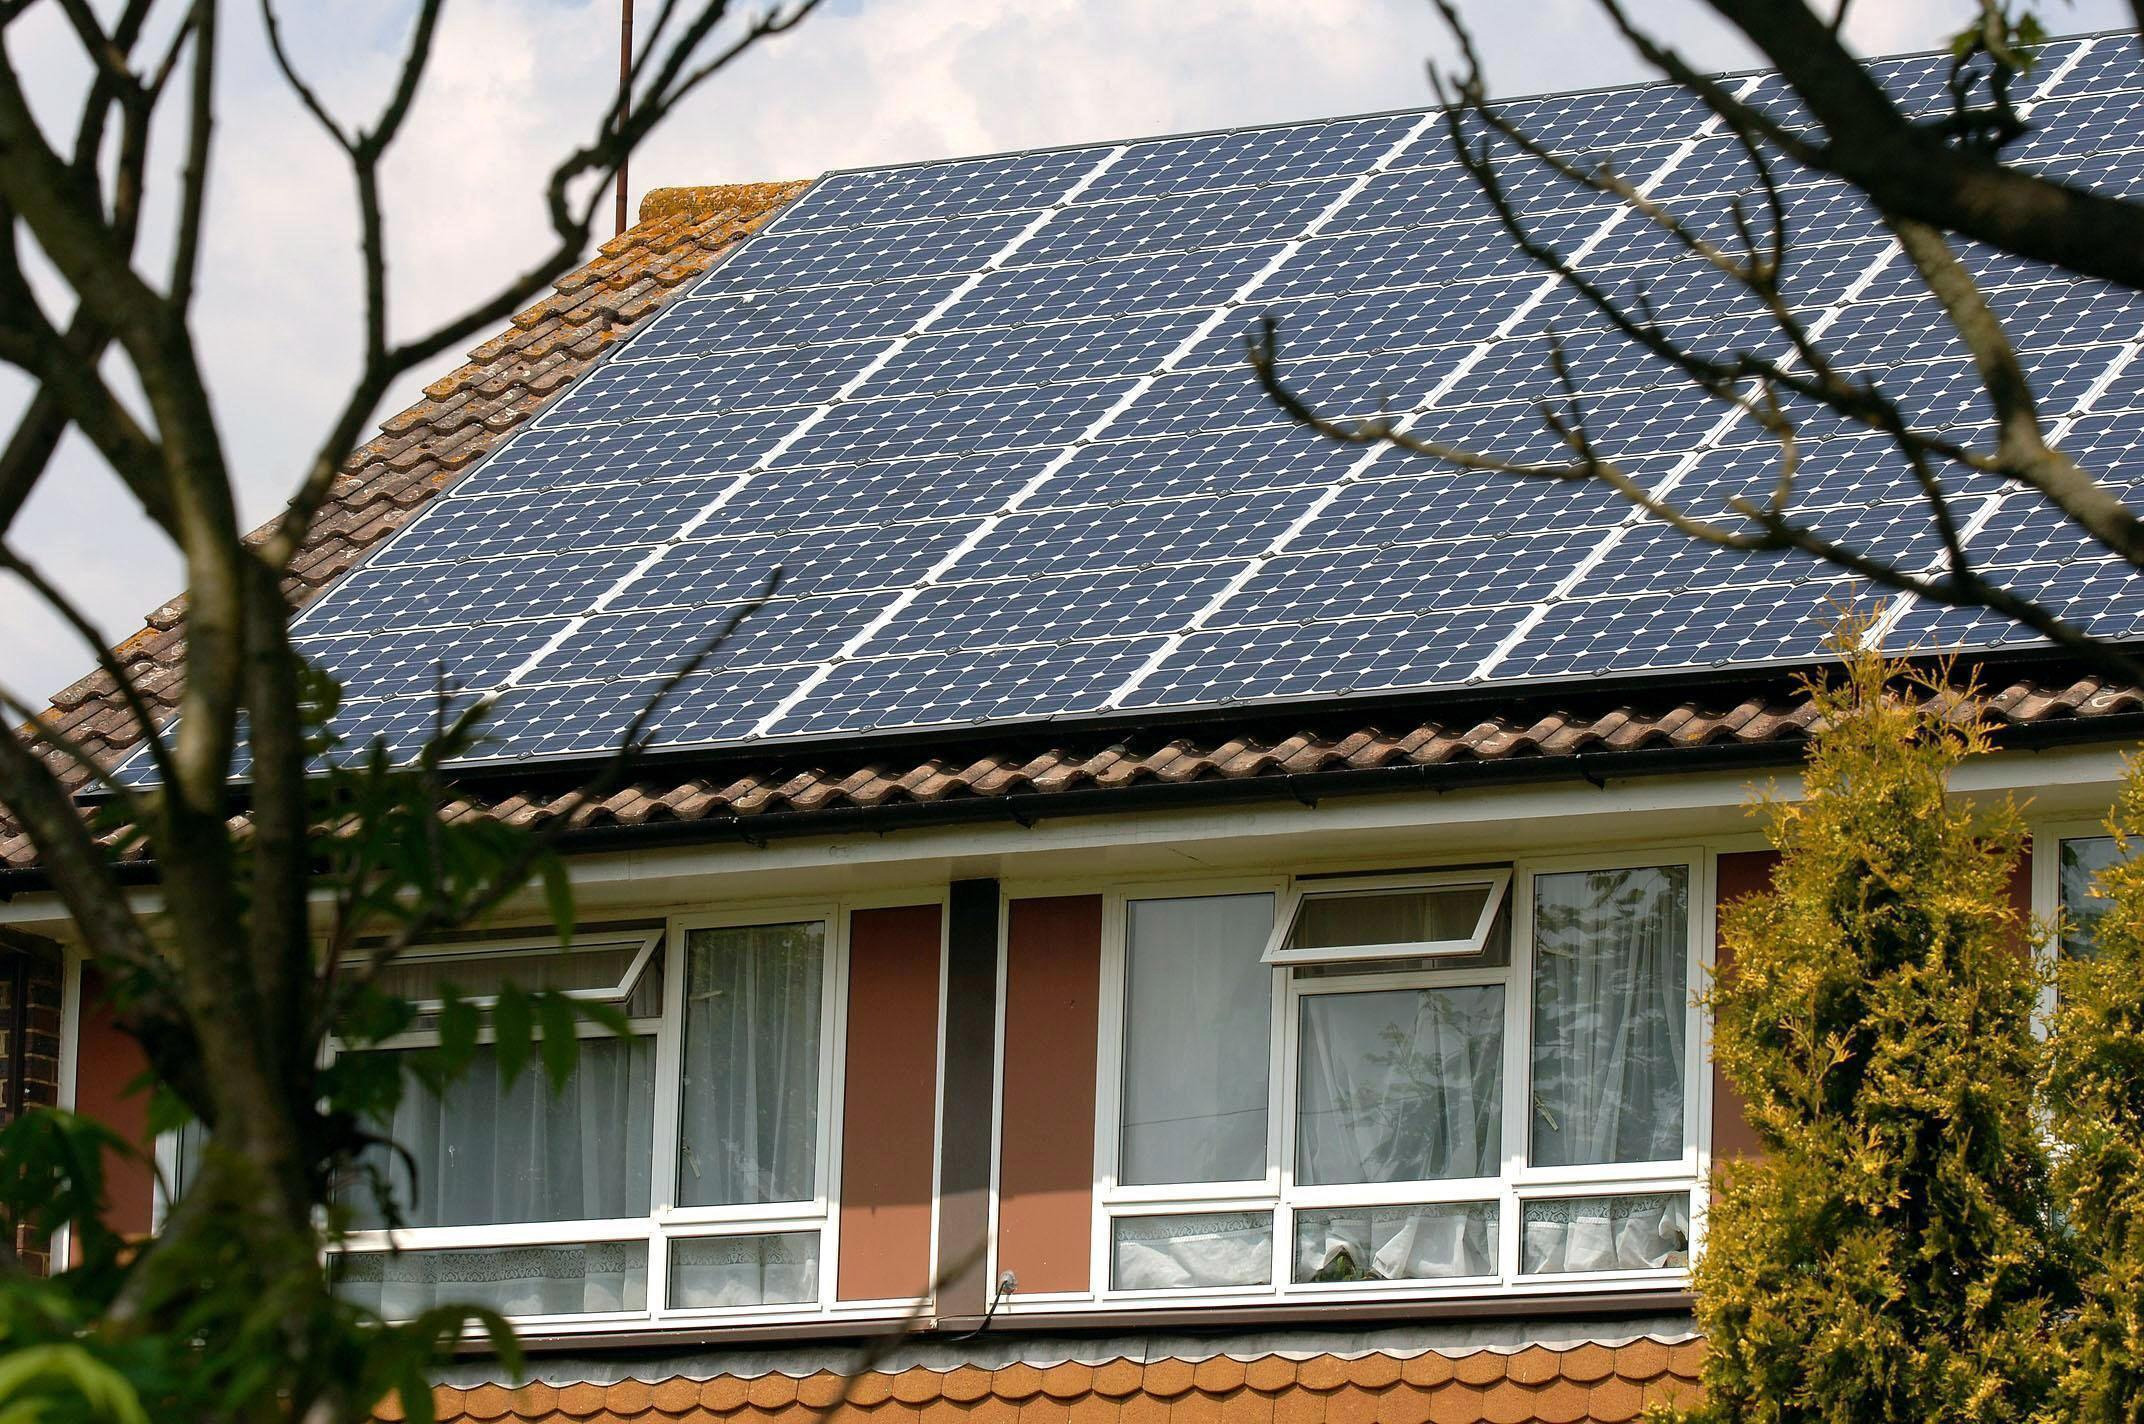 Homeowners warned of Green Deal scams